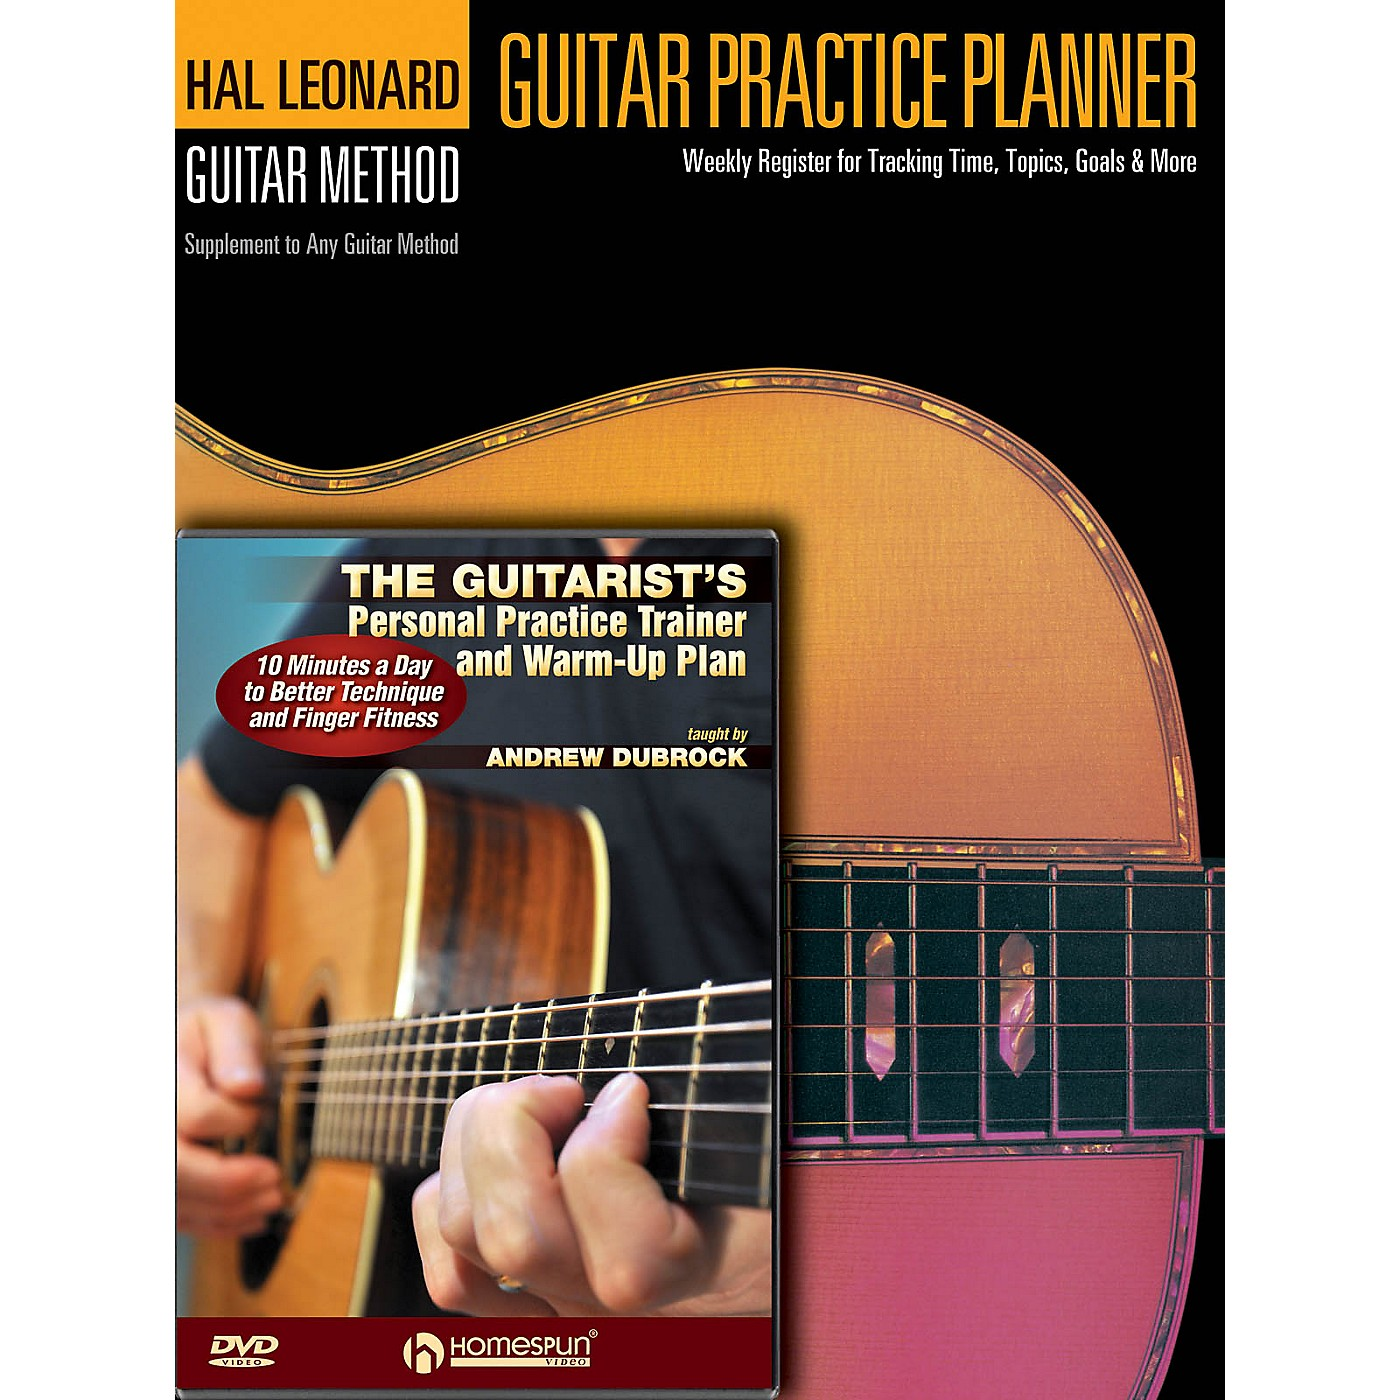 Homespun Guitar Practice Pack Homespun Tapes Series Softcover with DVD Written by Andrew DuBrock thumbnail